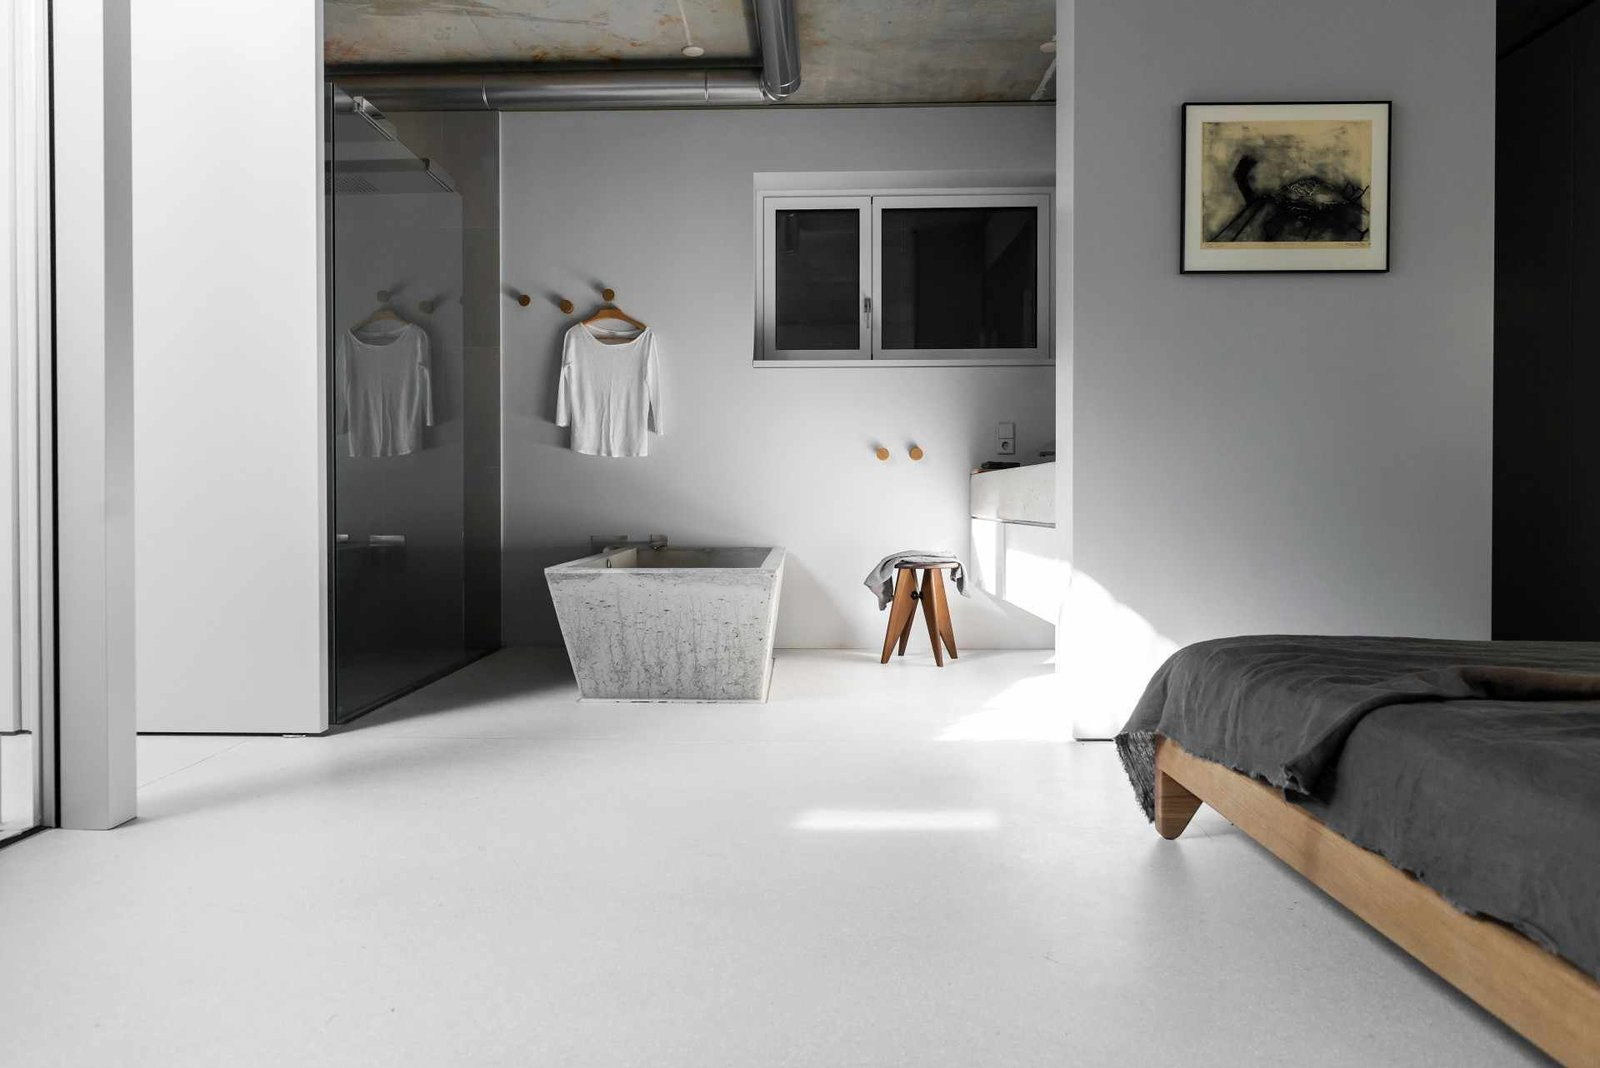 Tagged: Bath Room, Freestanding Tub, Soaking Tub, Enclosed Shower, and Corner Shower.  House on Prenzlauer Berg by Leibal